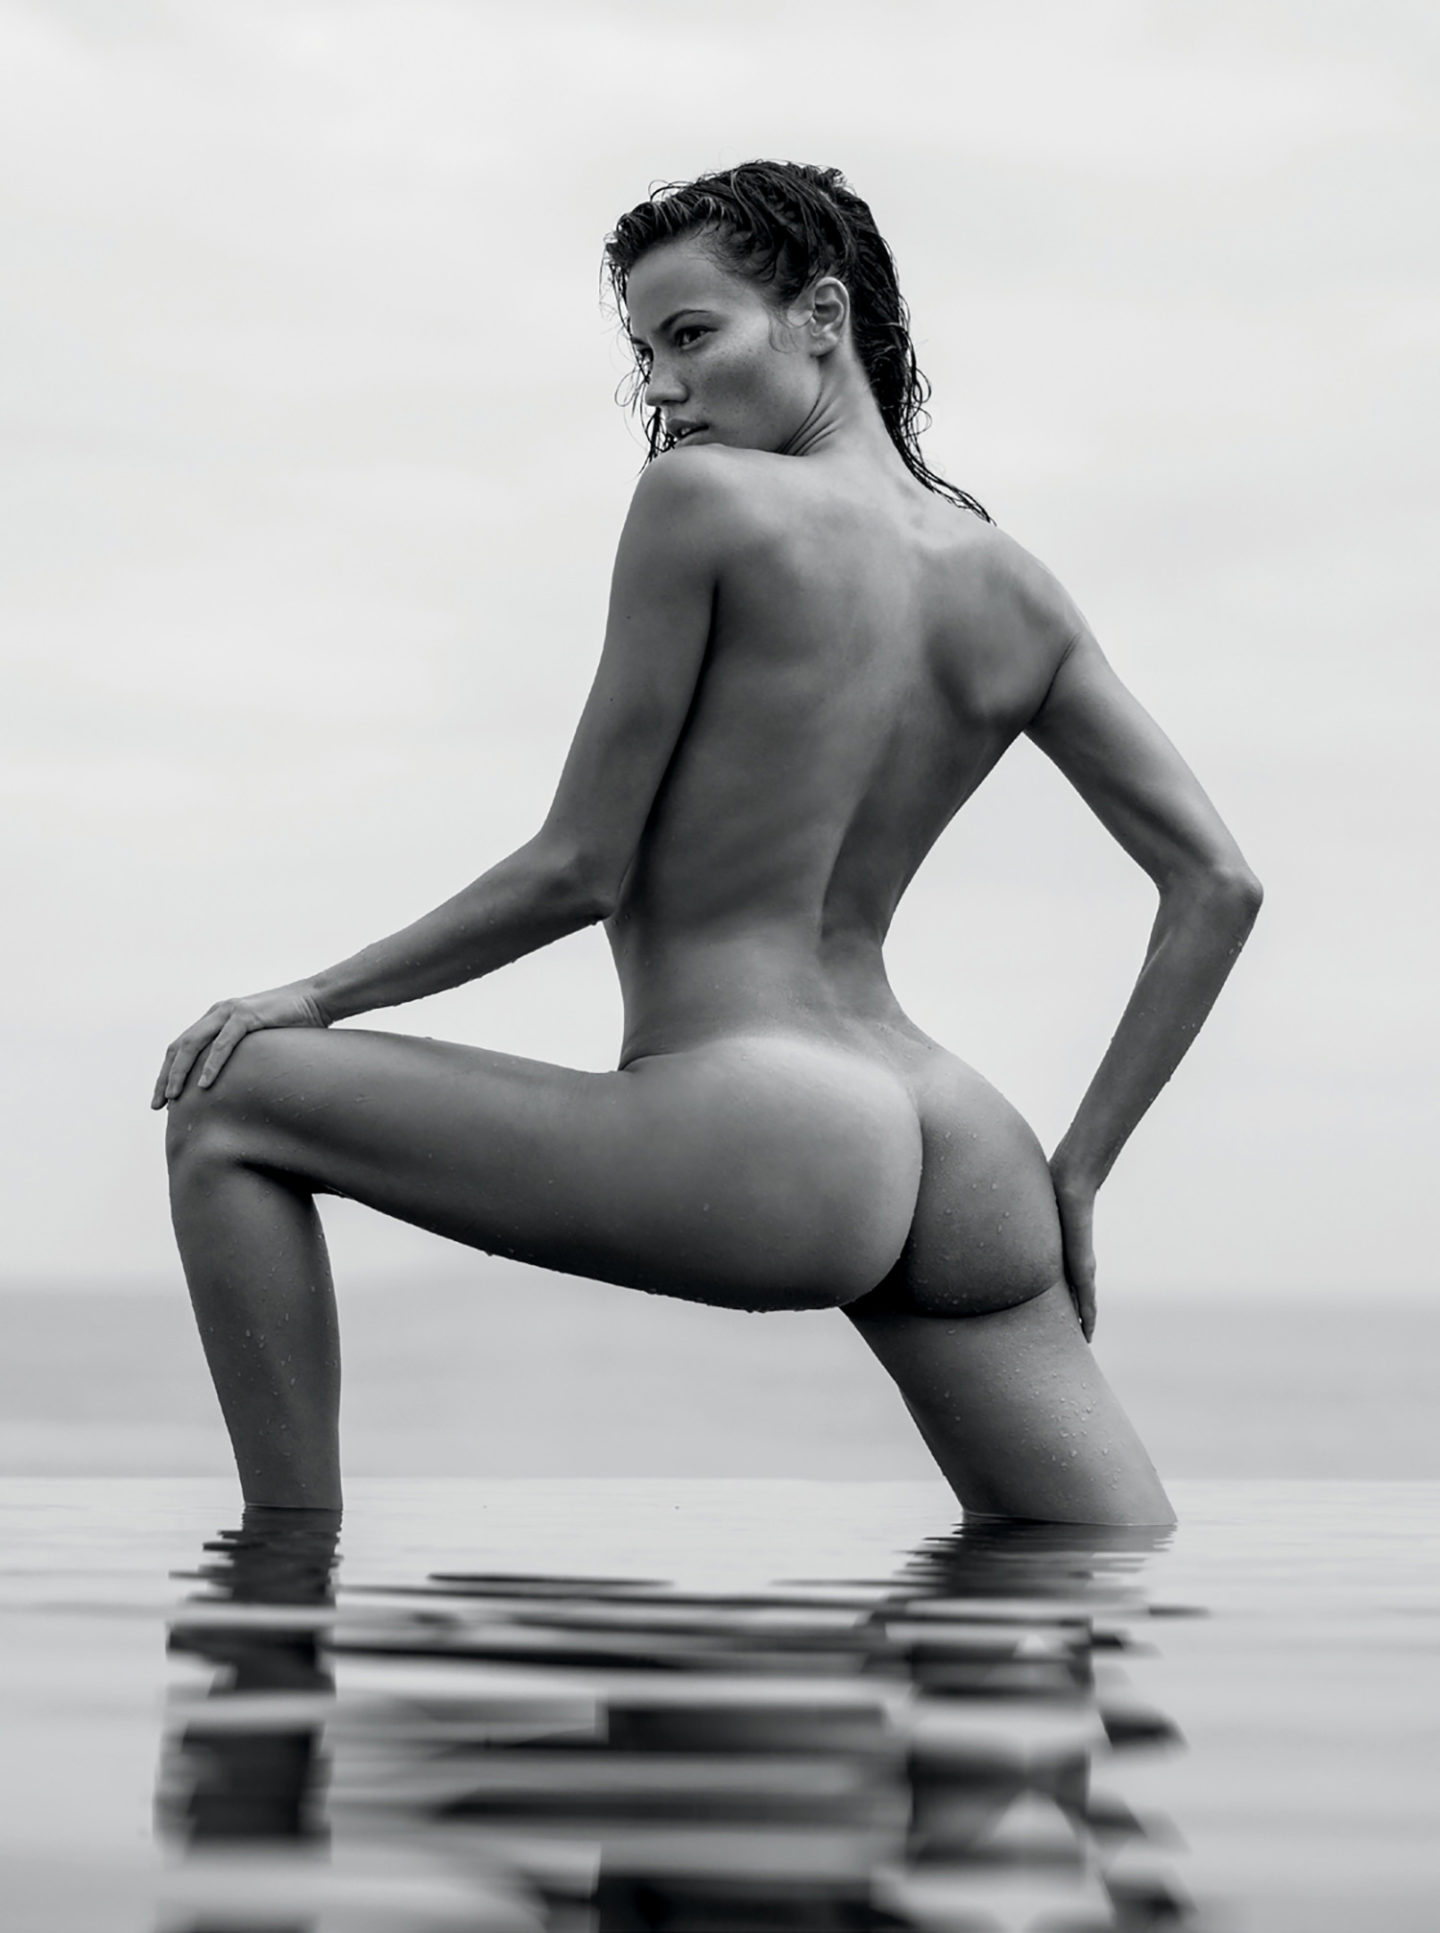 Keilani Asmus - David Bellemere photoshoot